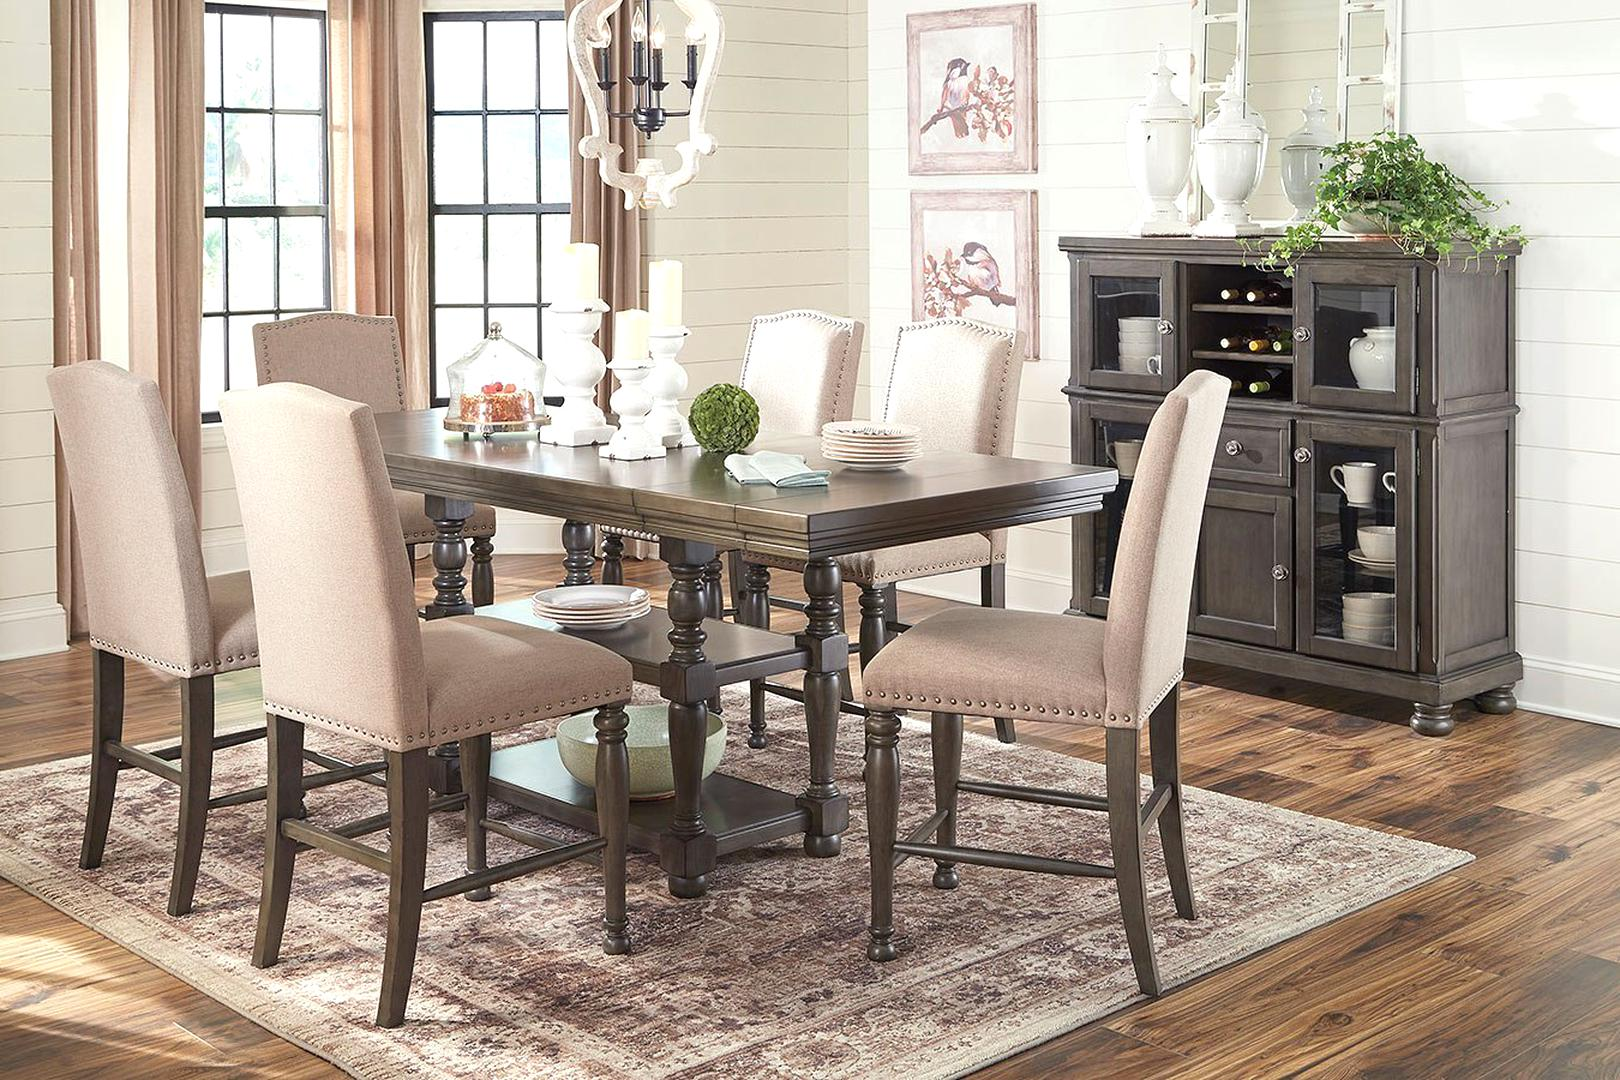 counter height dining room sets for sale